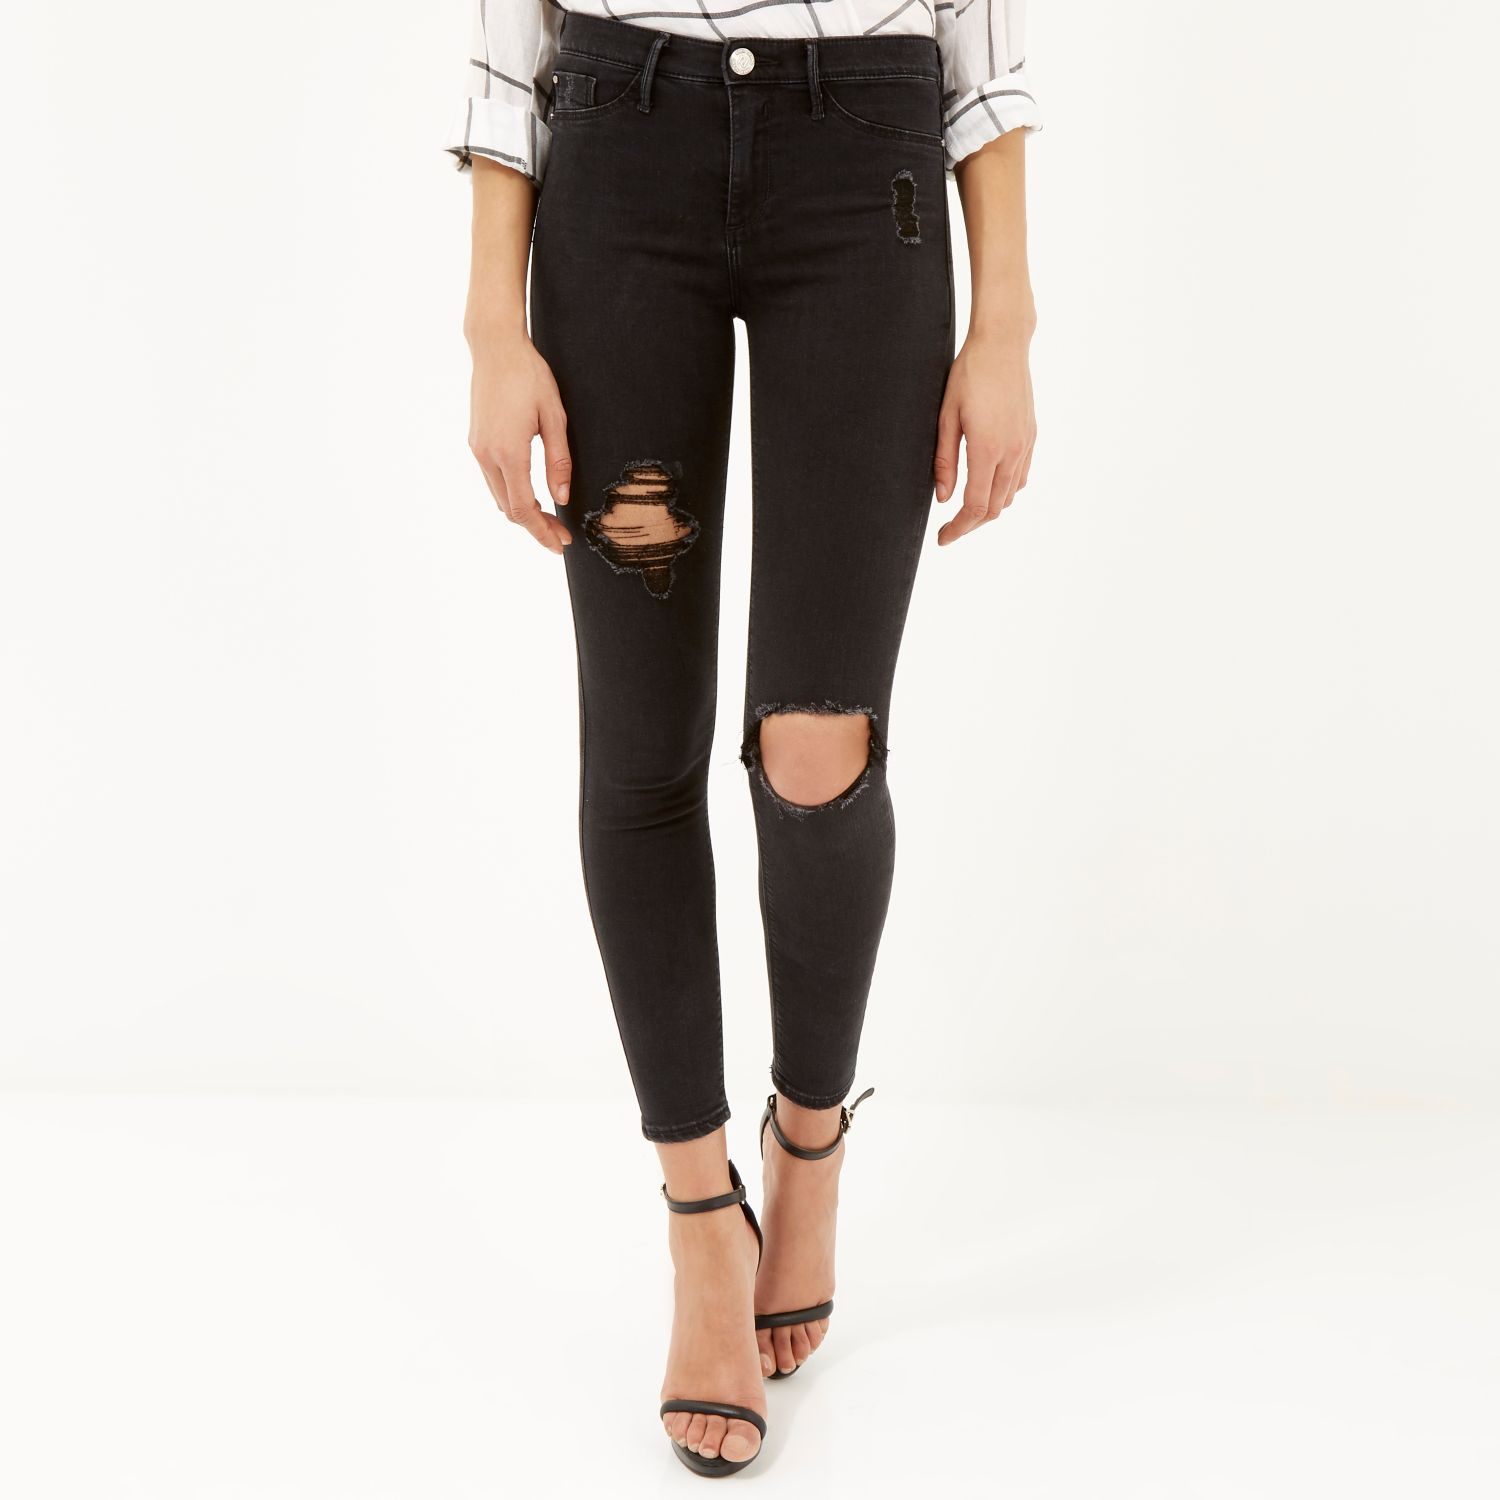 121a91d1665 River Island Washed Black Ripped Molly Jeggings in Black - Lyst